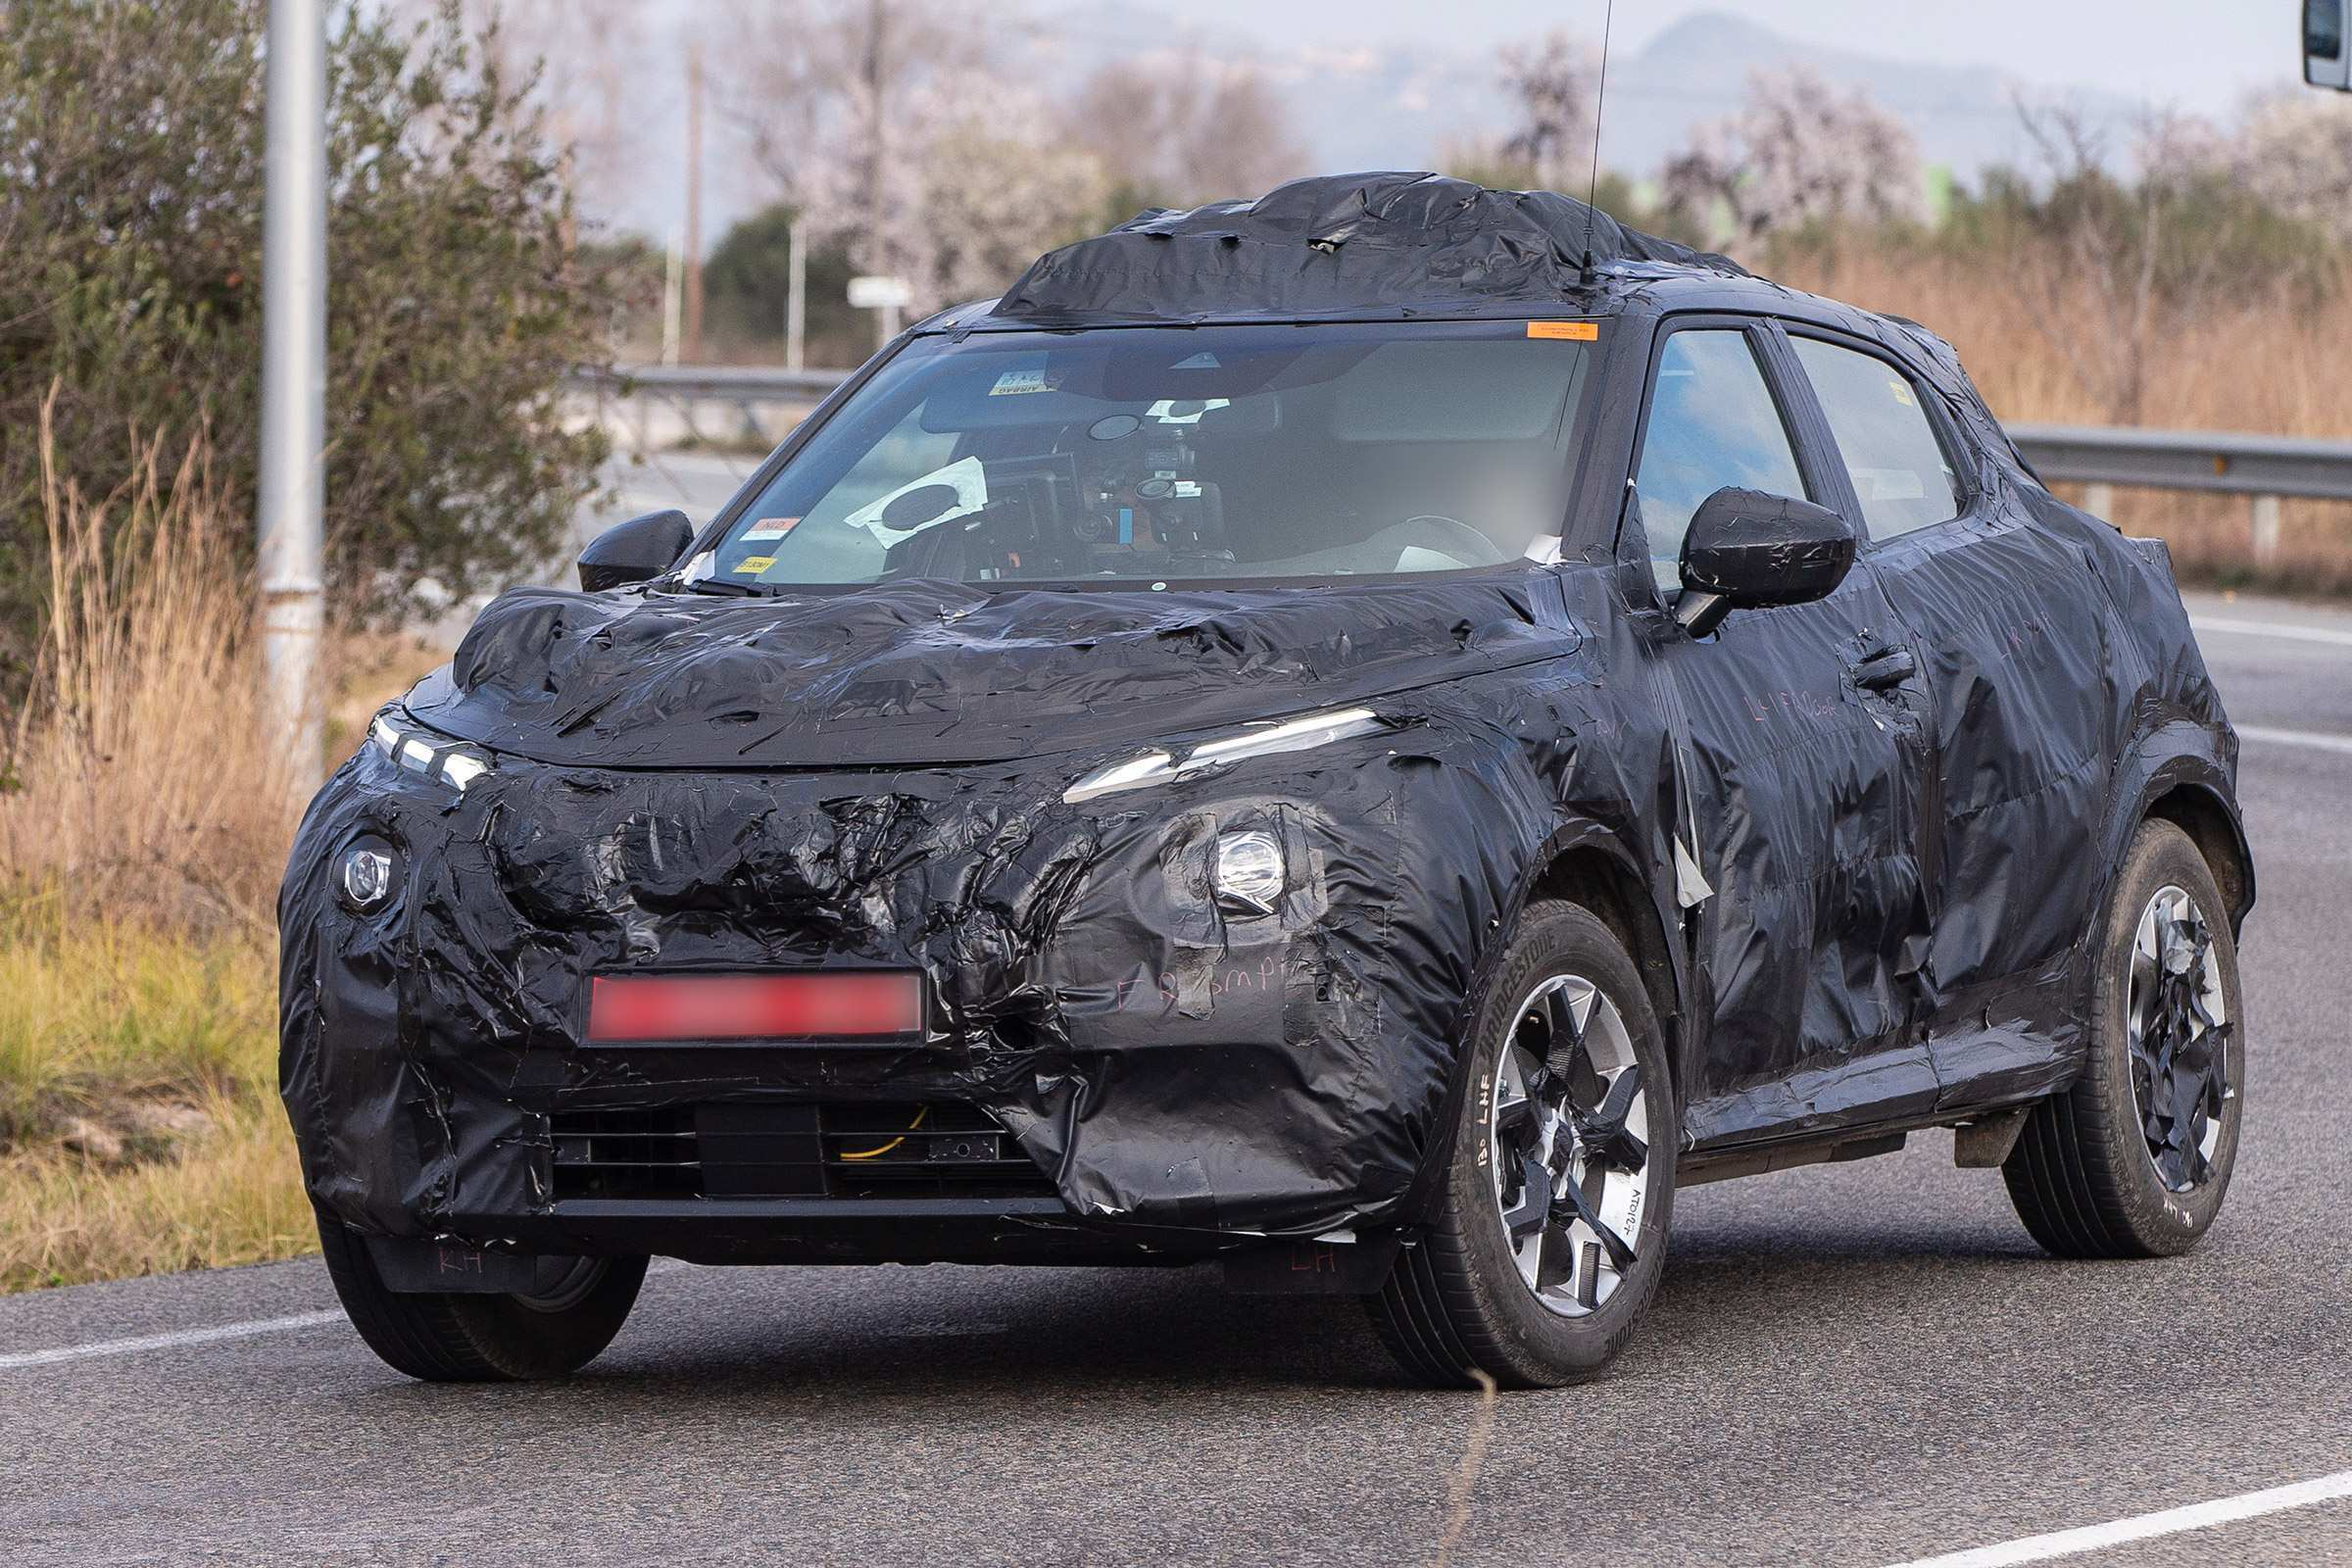 82 New Juke Nissan 2019 Specs and Review by Juke Nissan 2019